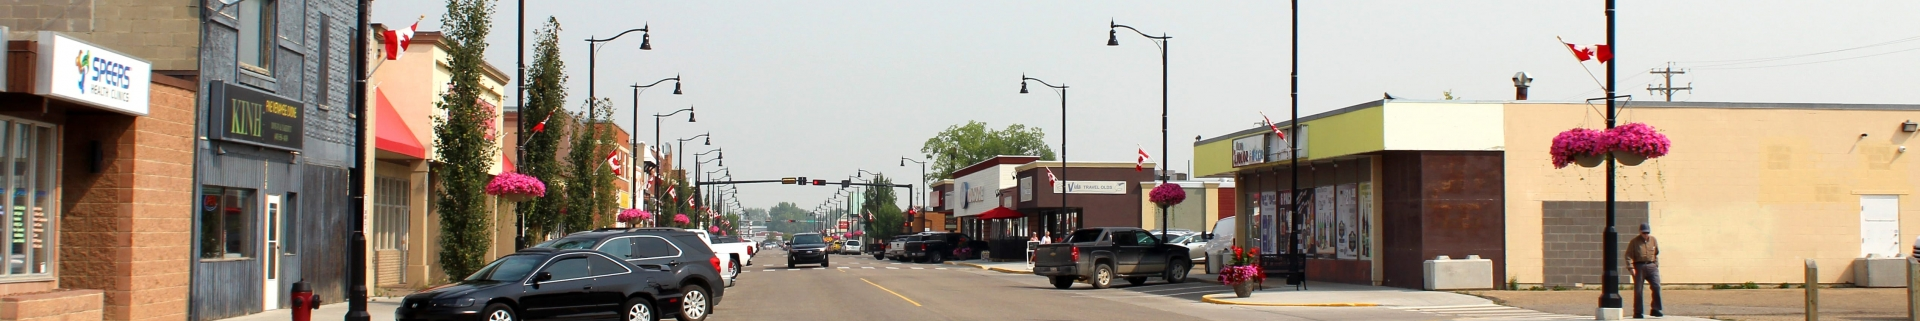 Cars parked and driving down the Main Street of the Town of Olds